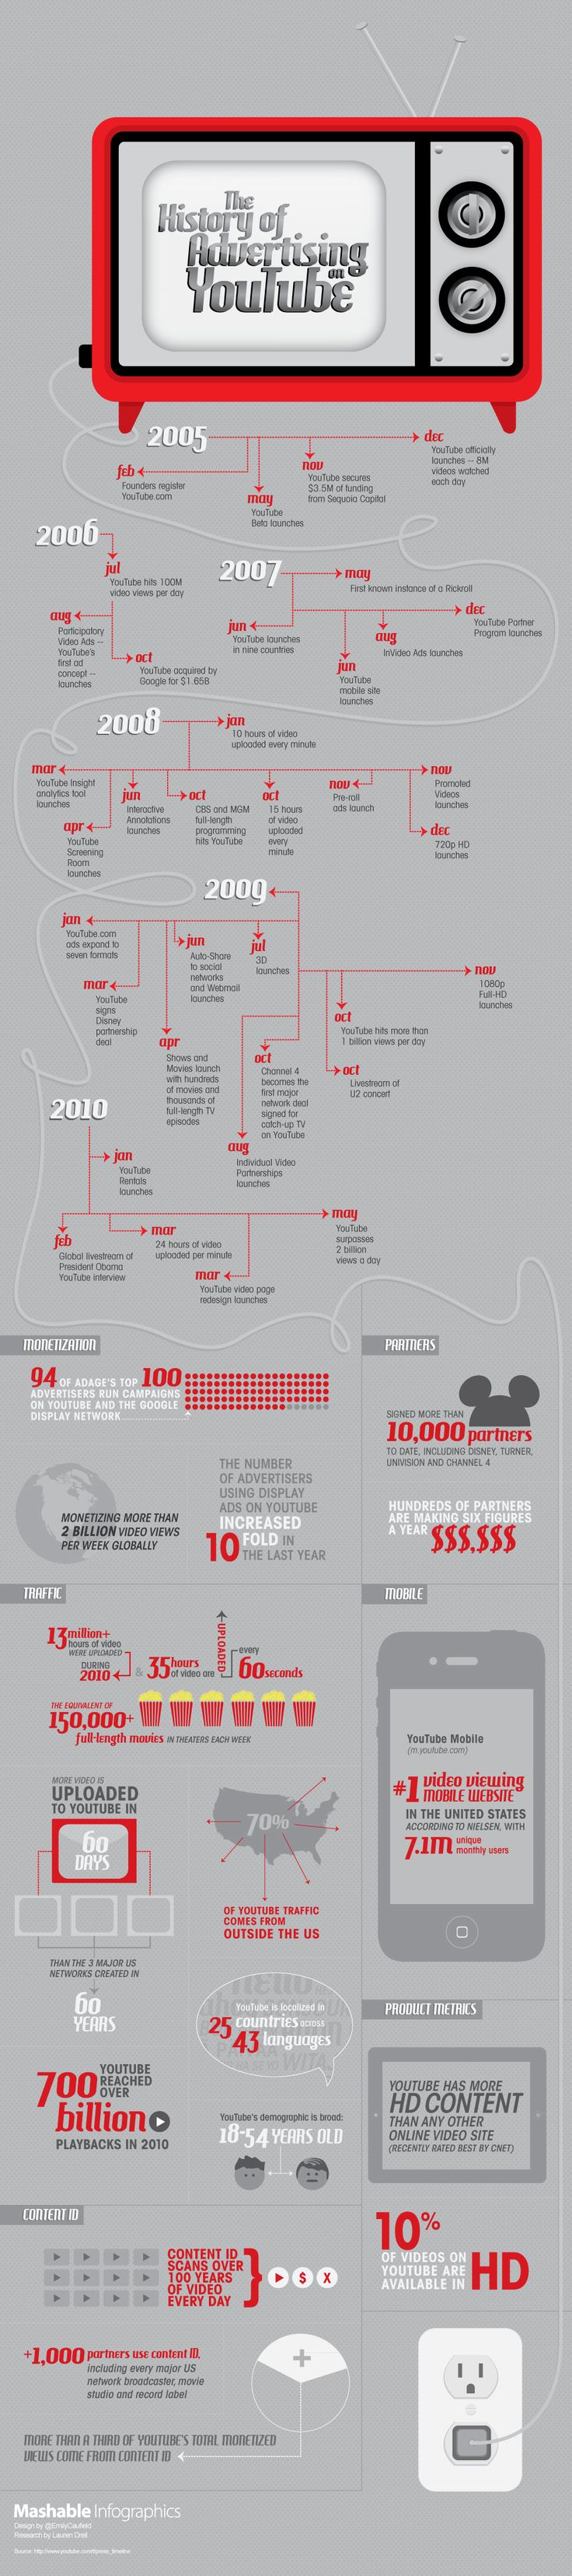 The History of Advertising on YouTube – Infographic - Downgraf - Design Weblog For Designers